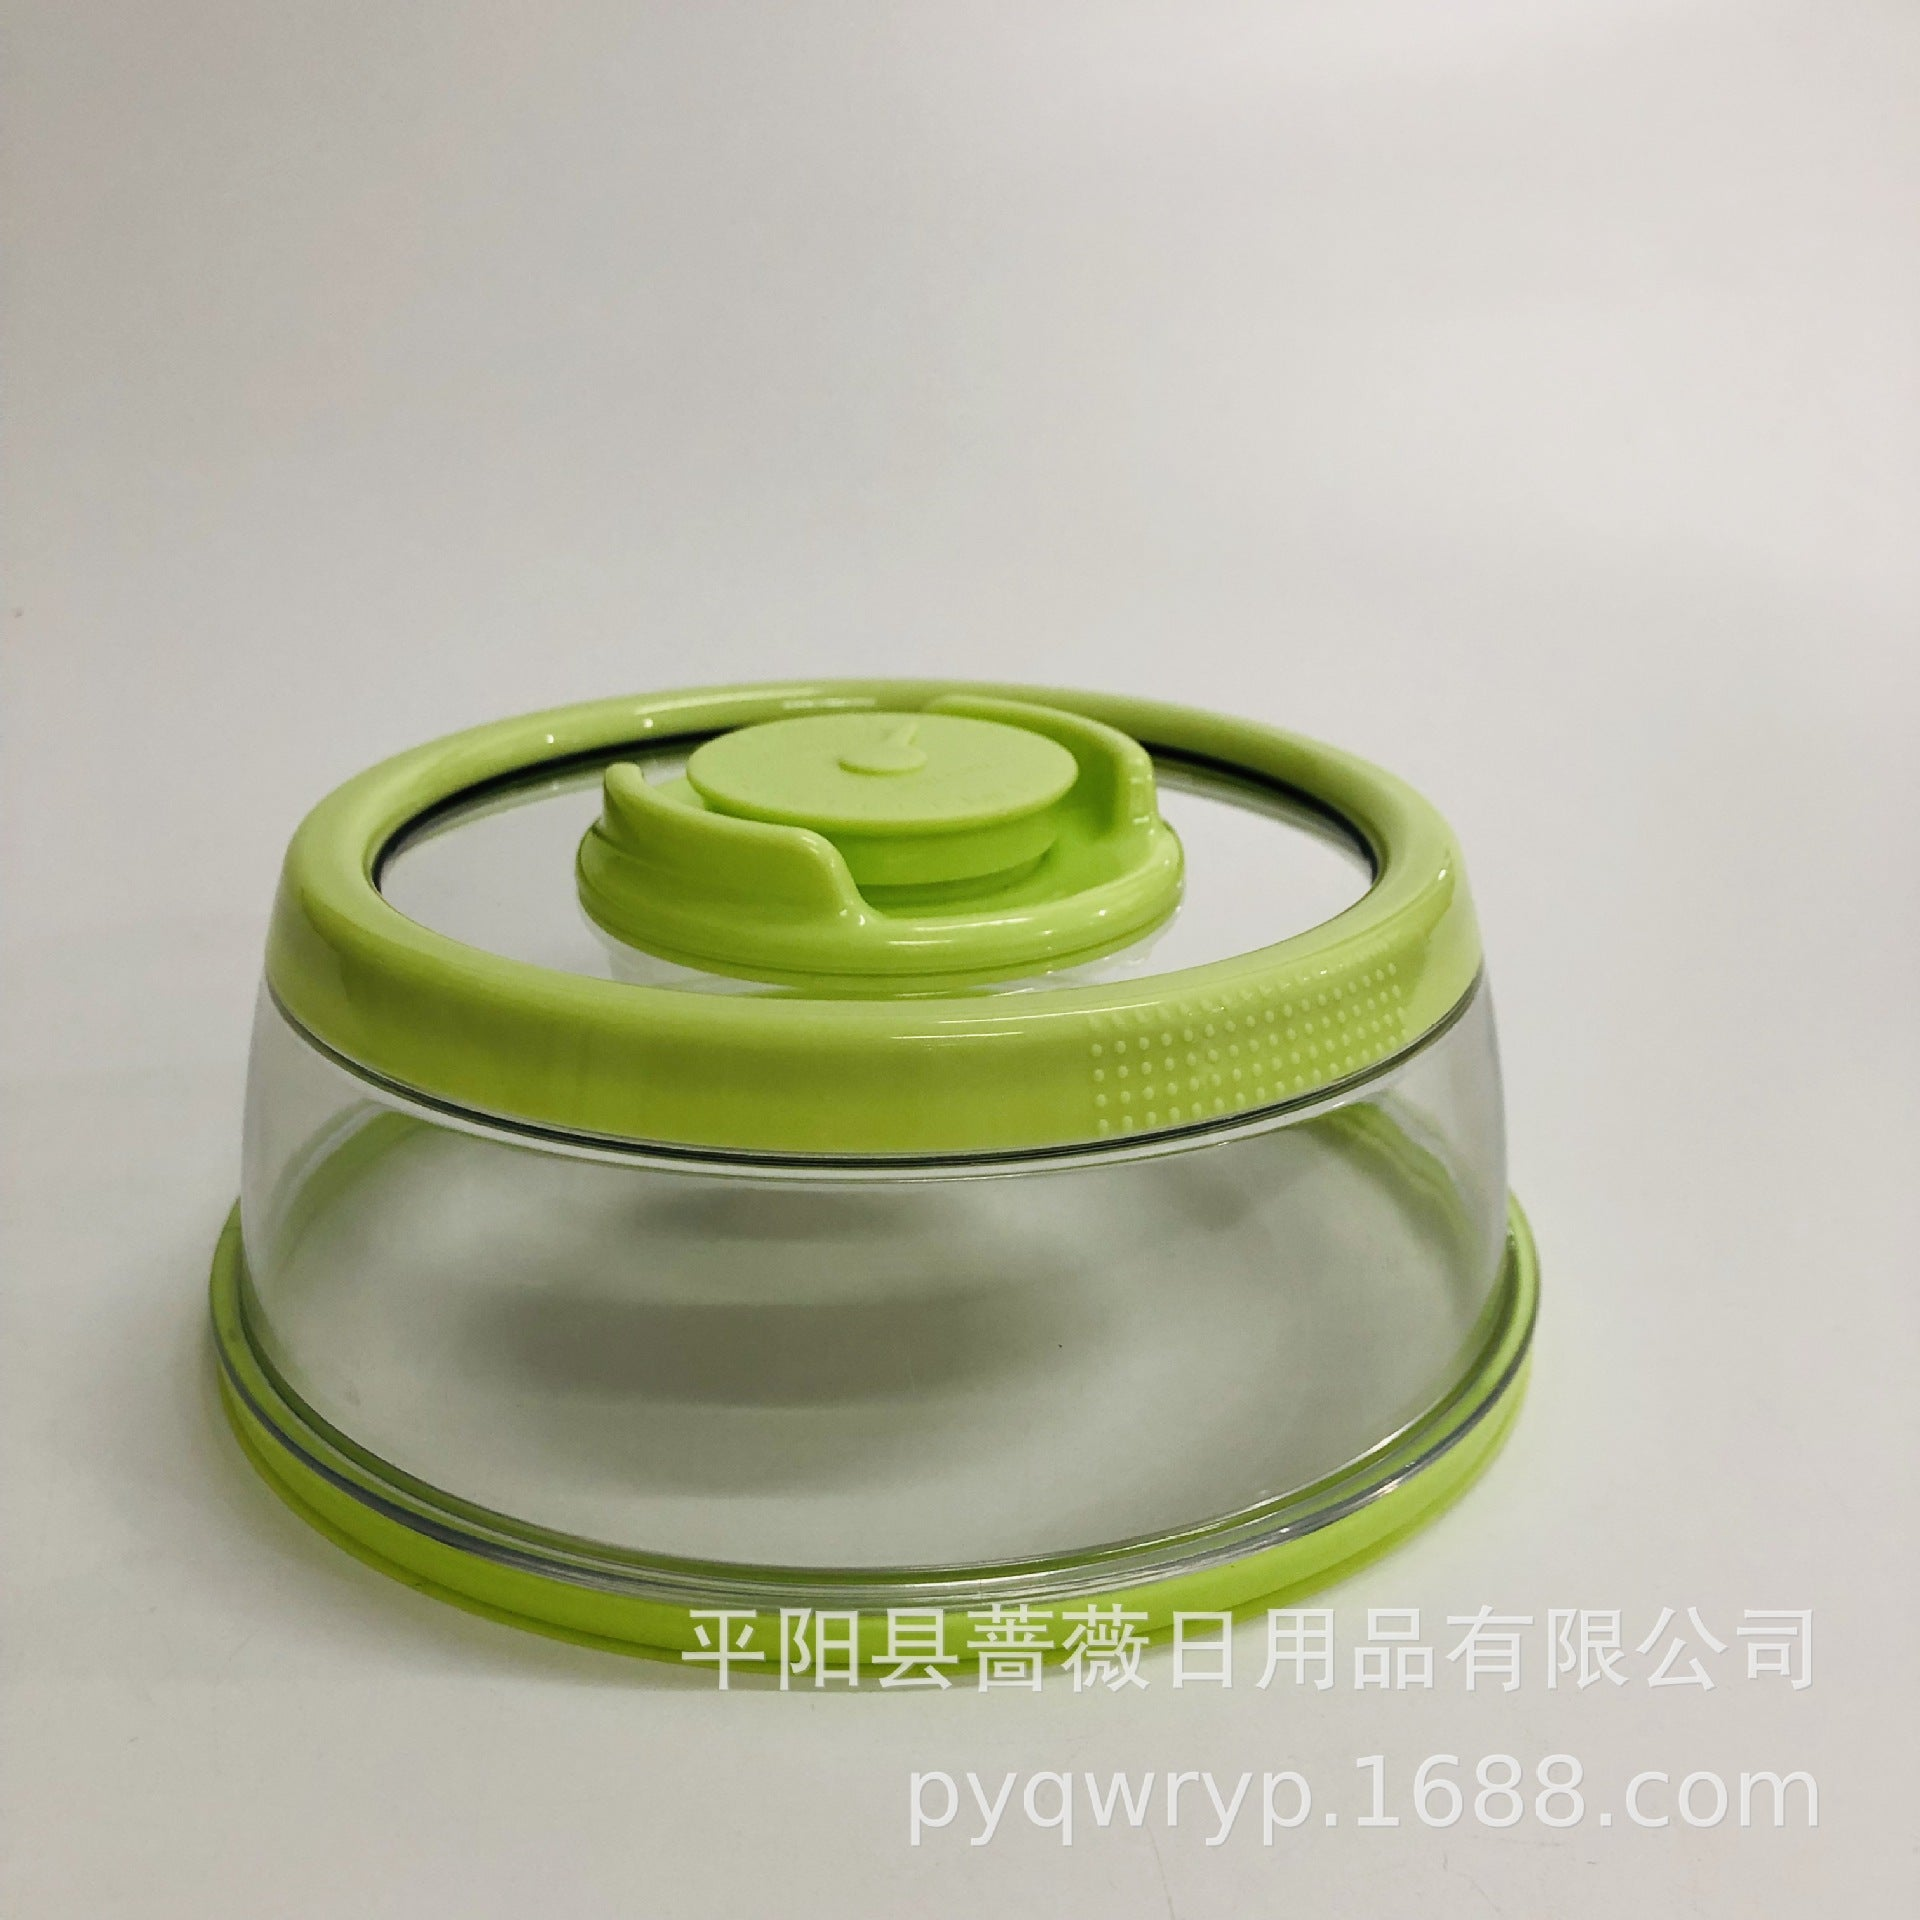 Vacuum Push-Type Food Sealer